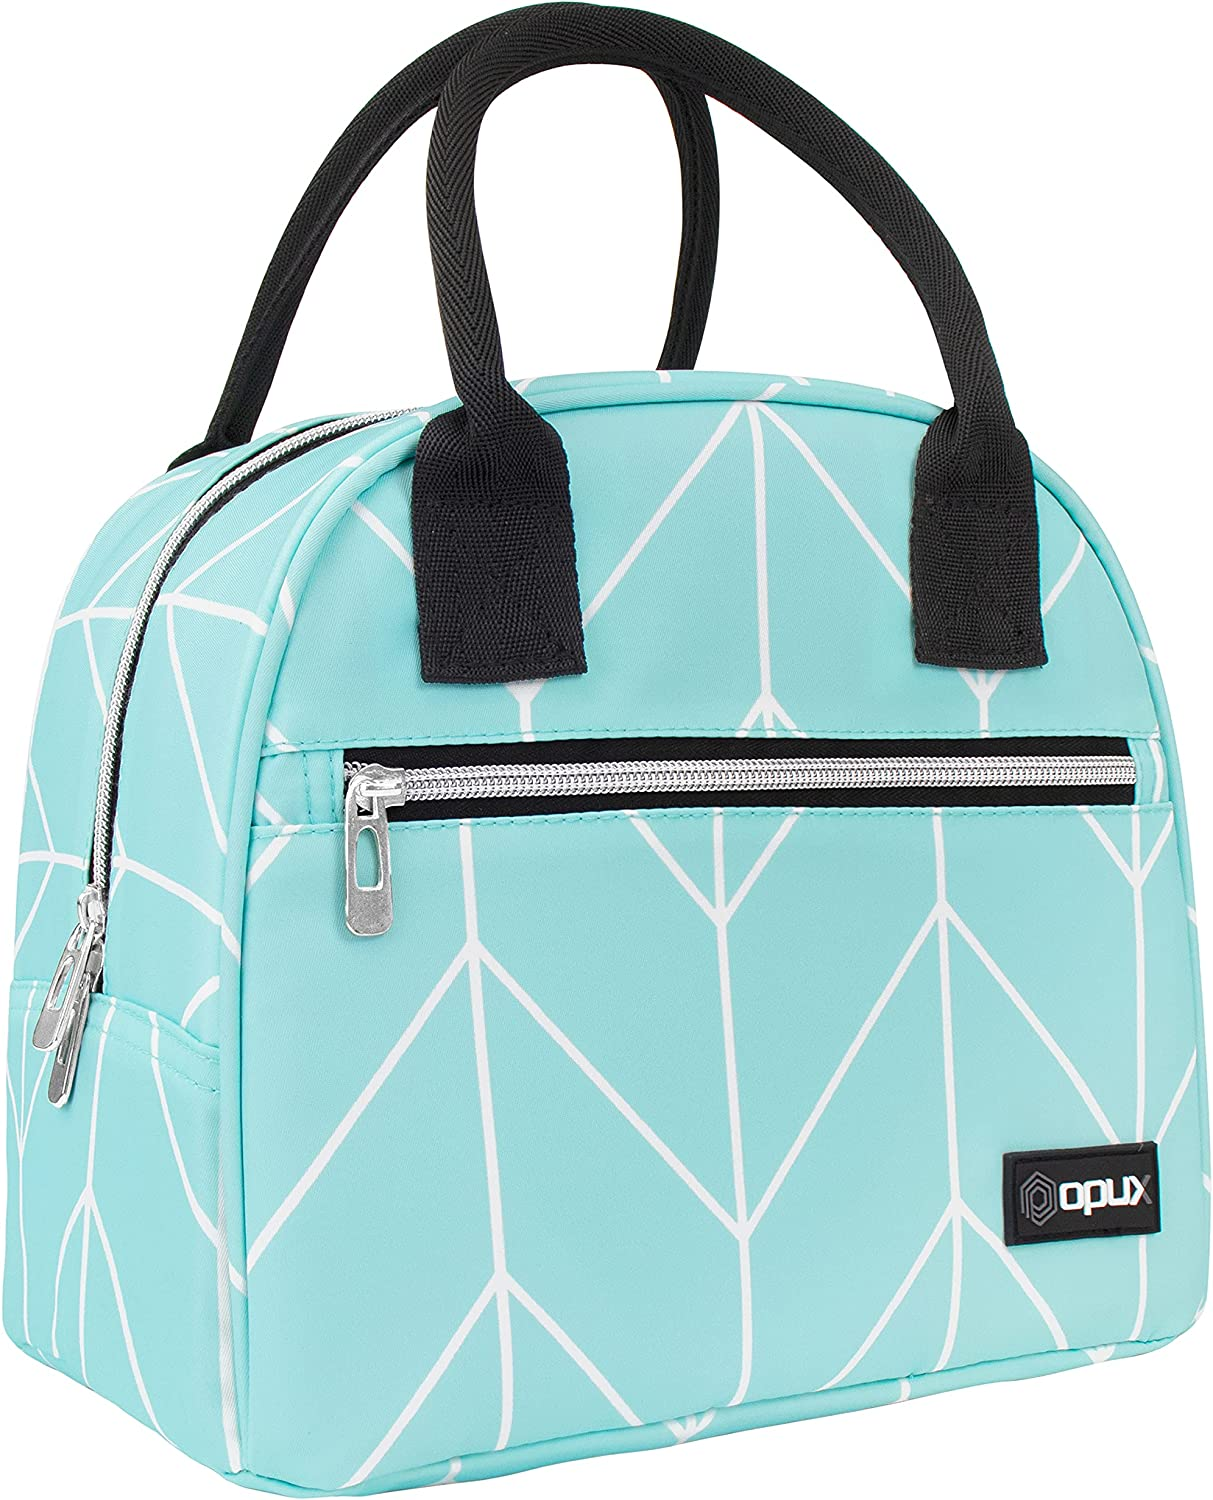 OPUX Insulated Lunch Box Bags Special sale item Girls for Houston Mall Women